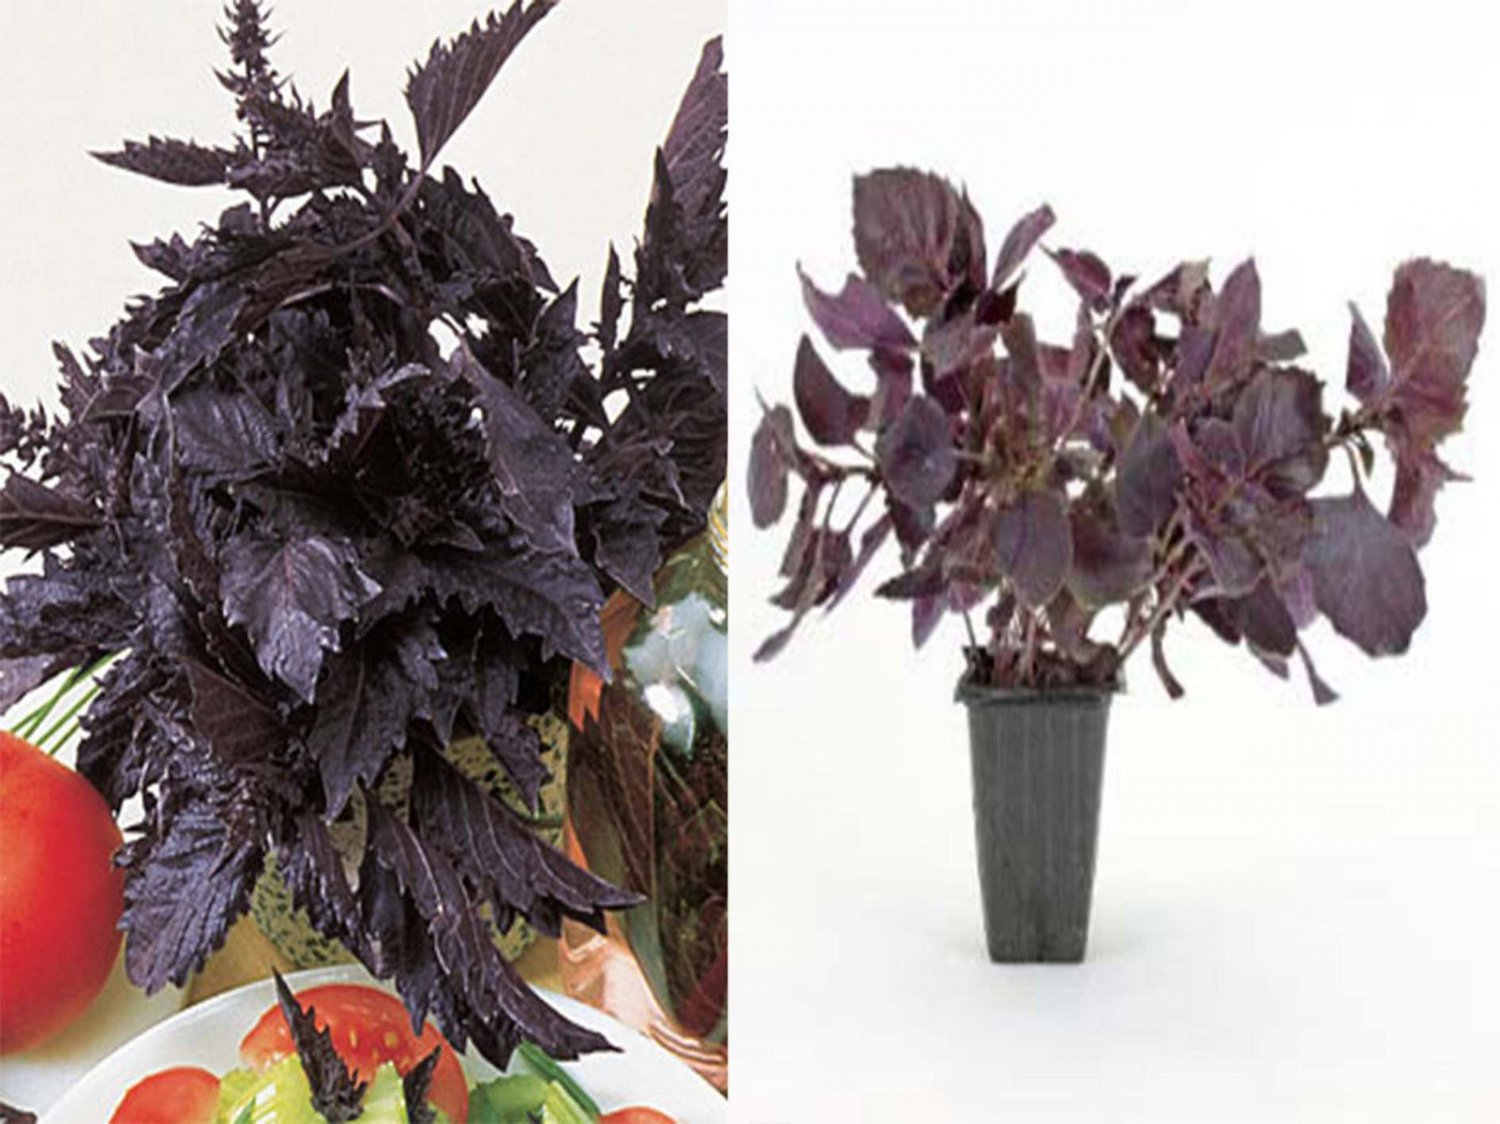 100 Purple Ruffles Basil seeds * Grow your own herb* Exotic* EZ grow * A44